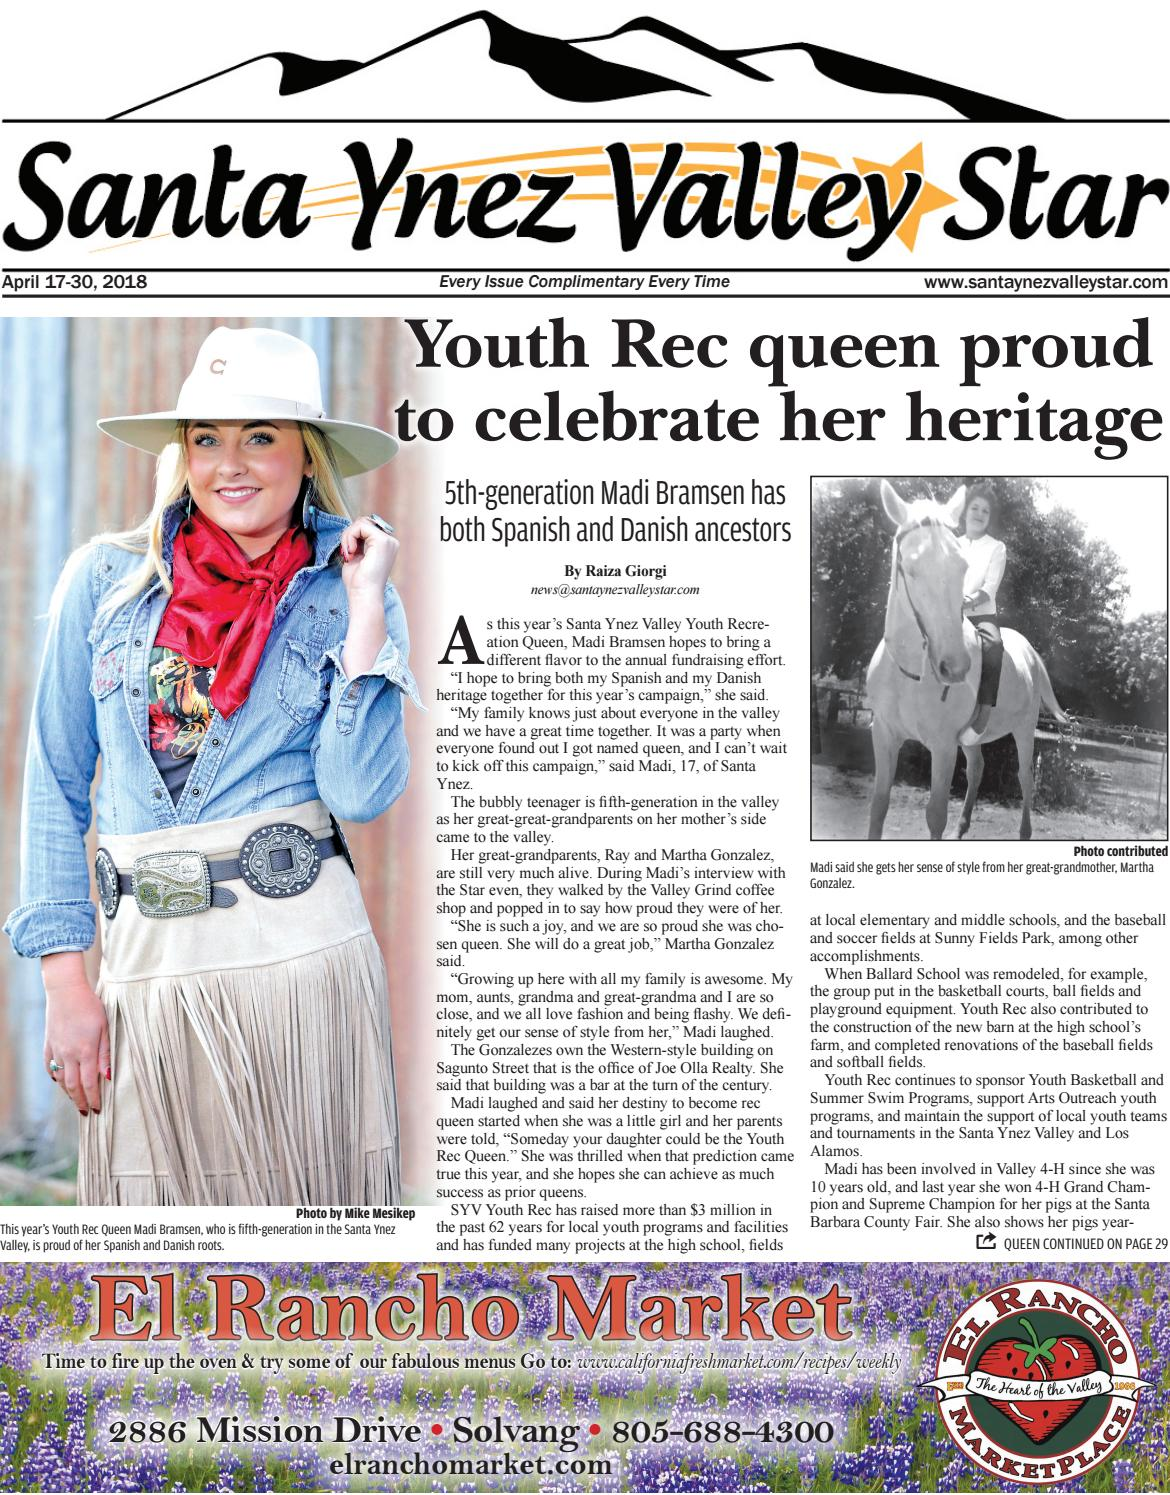 Santa Ynez Valley Star April B 2018 by Santa Ynez Valley